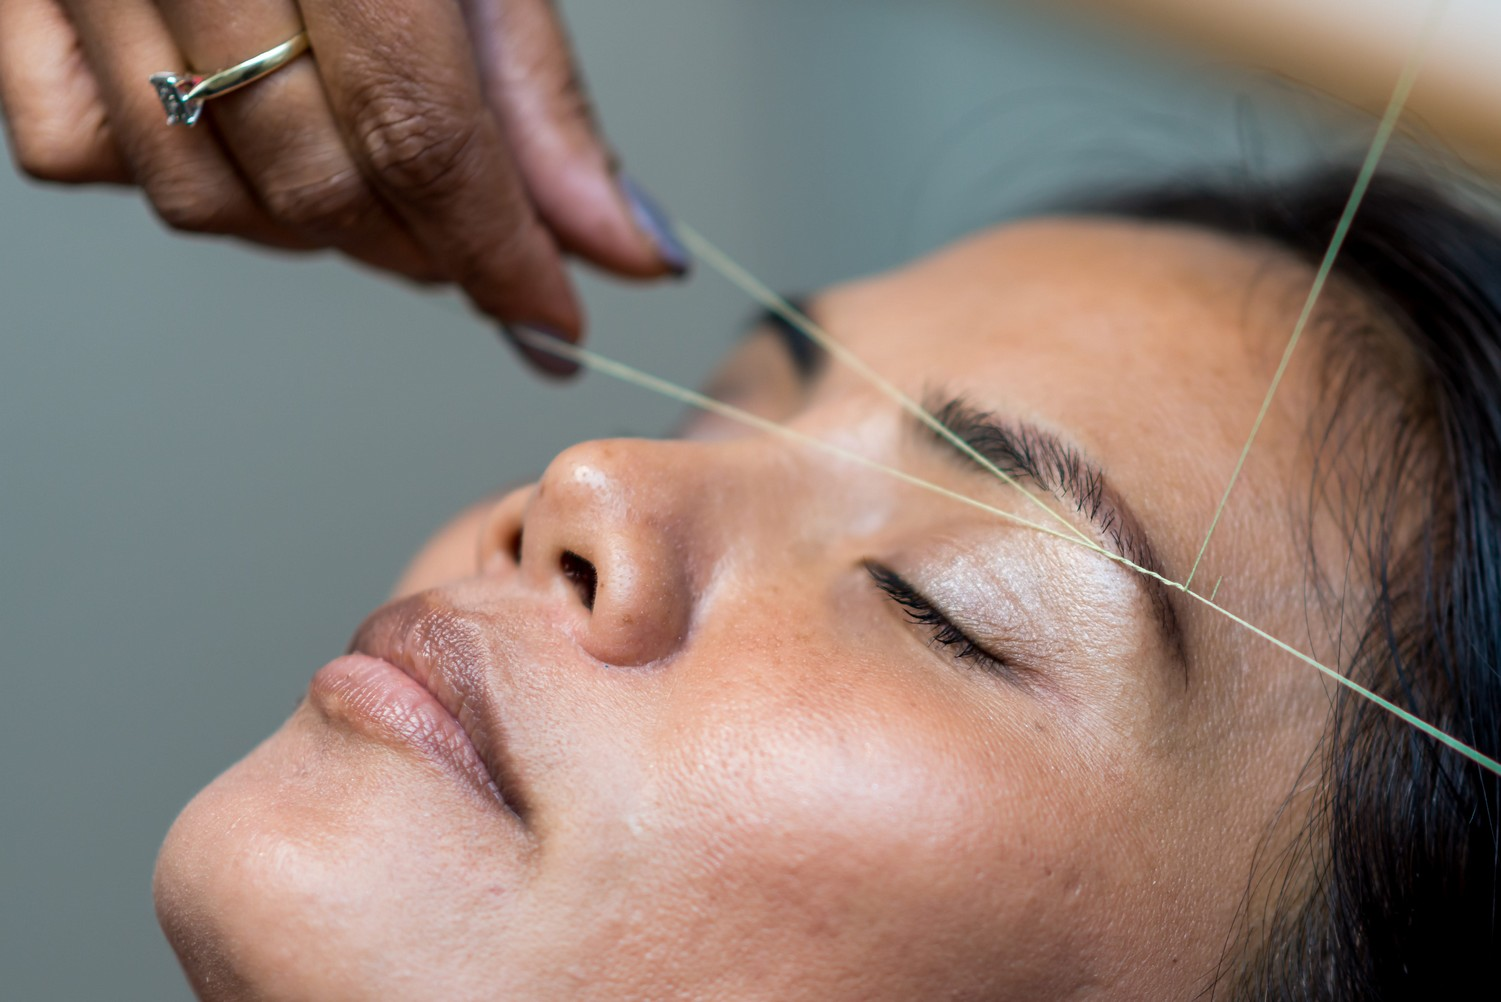 close up picture of a woman having her eyebrows threaded, which is not recommended for sensitive skin.